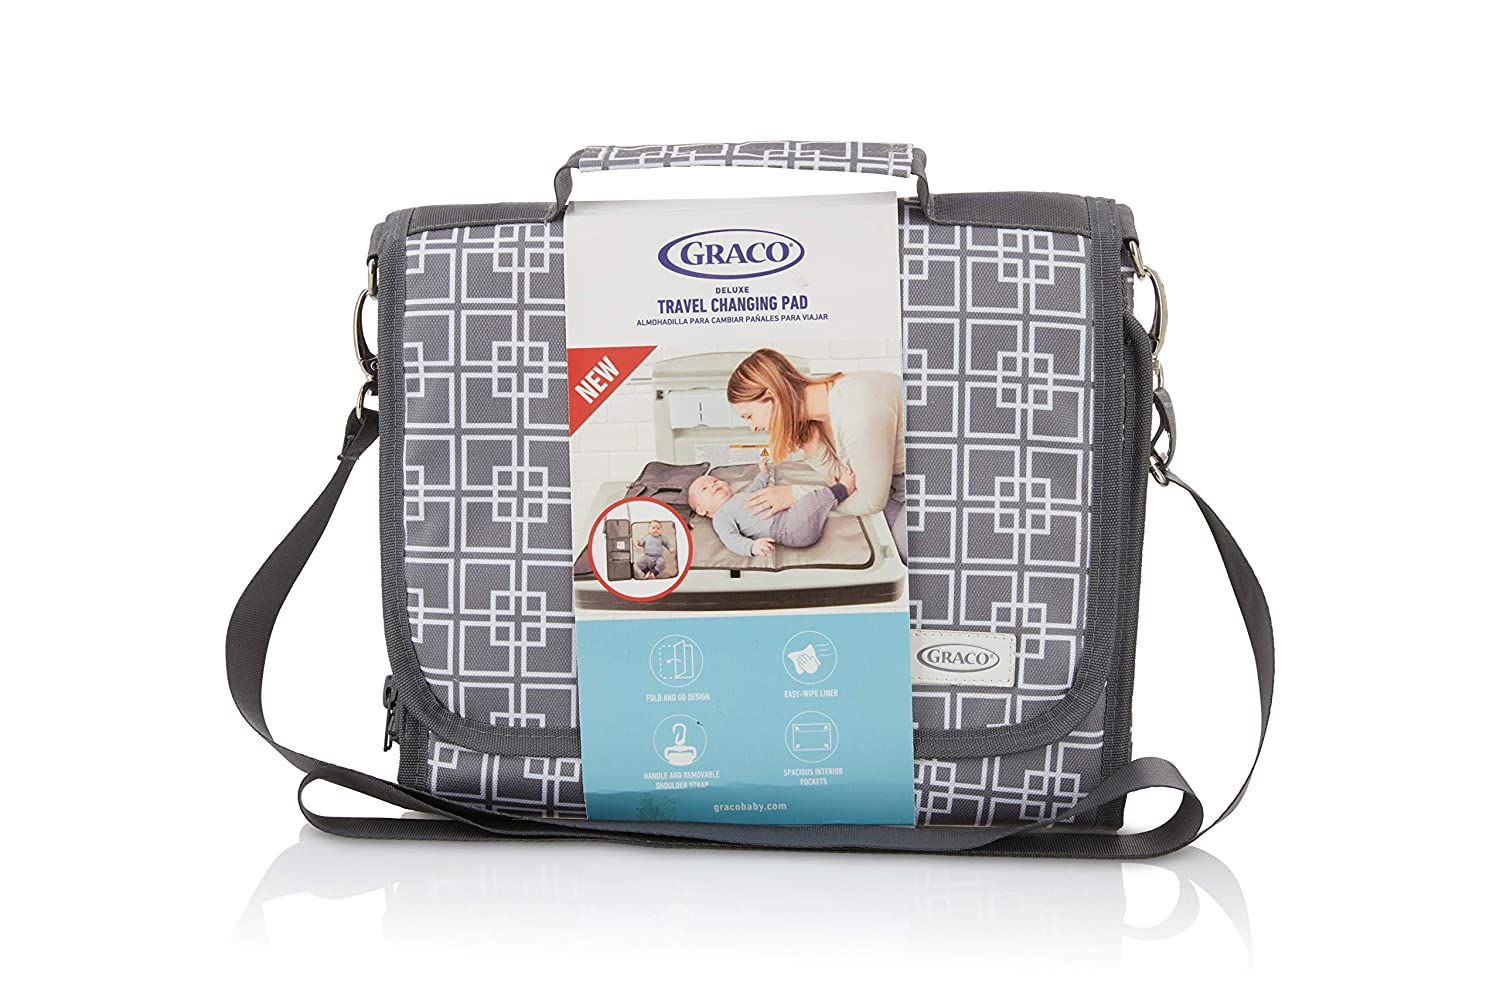 Graco On-The-Go Changing Pad